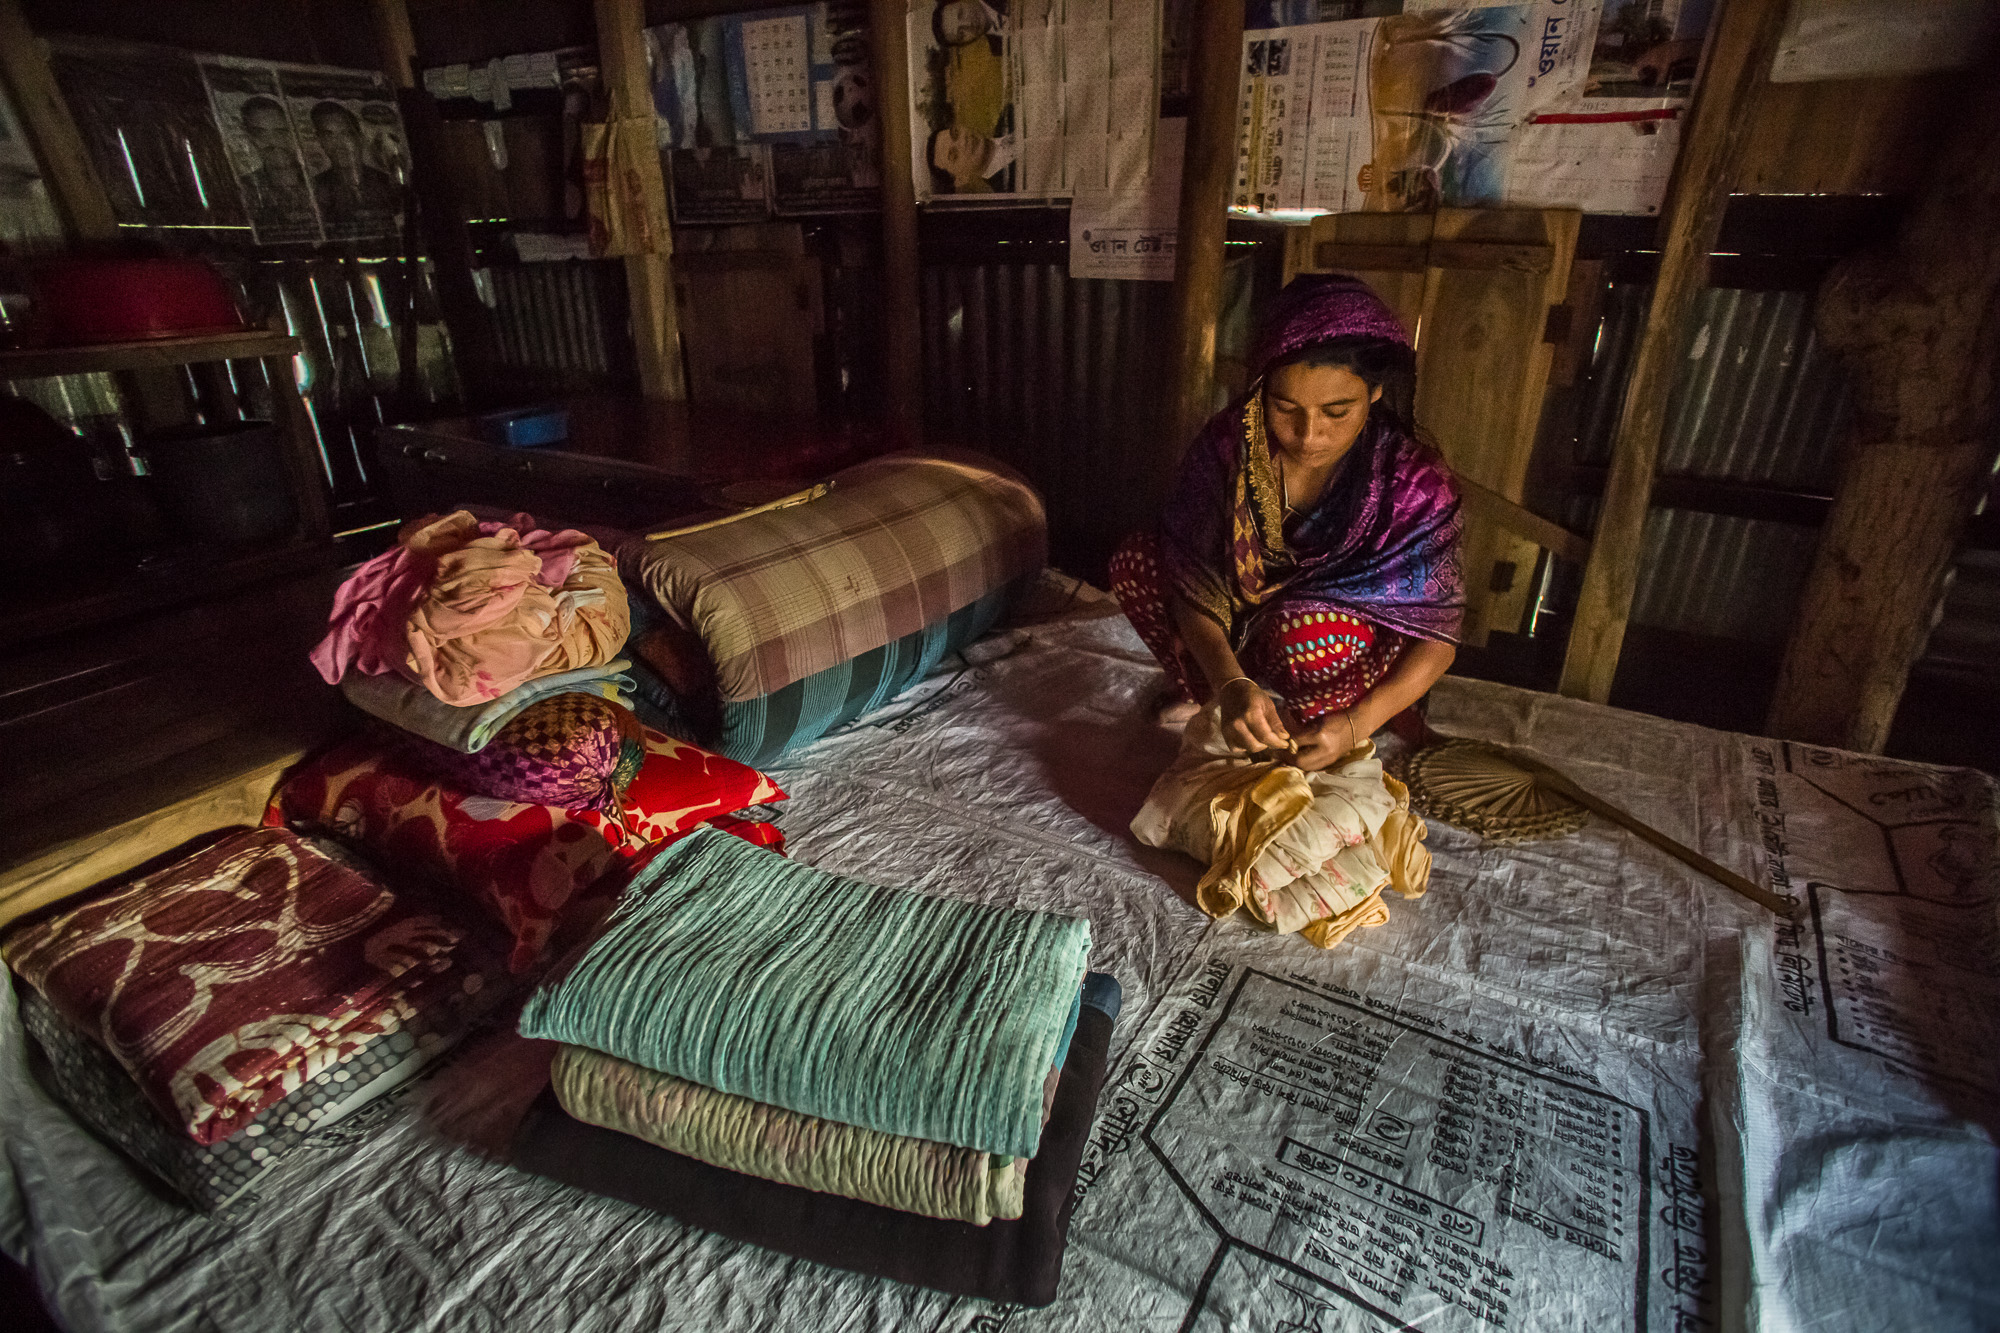 Ruma Begum, 28, a fish farmer in southern Bangladesh, doing chores at home.